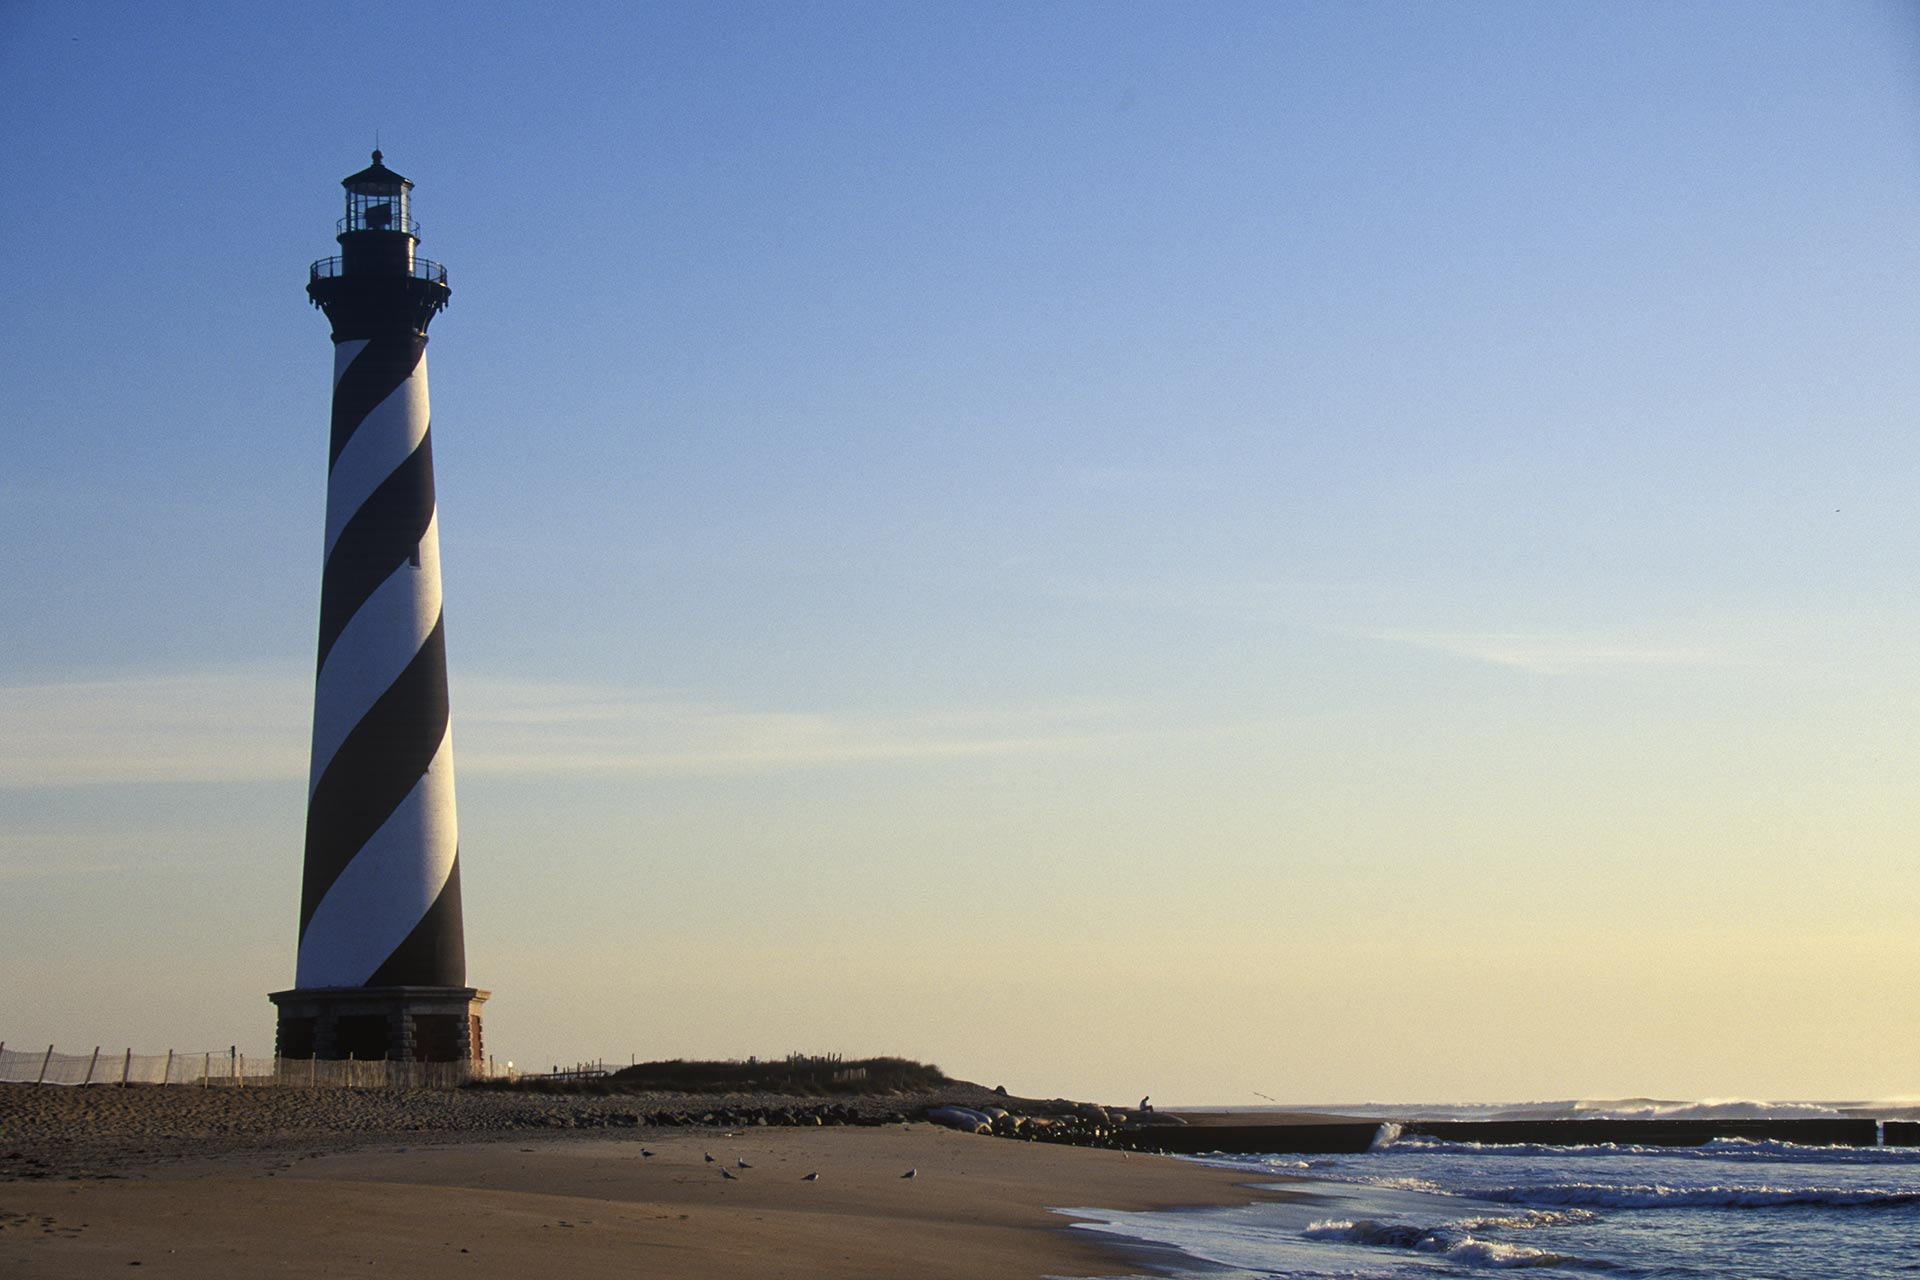 Cape Hatteras Lighthouse - Outer Banks, North Carolina